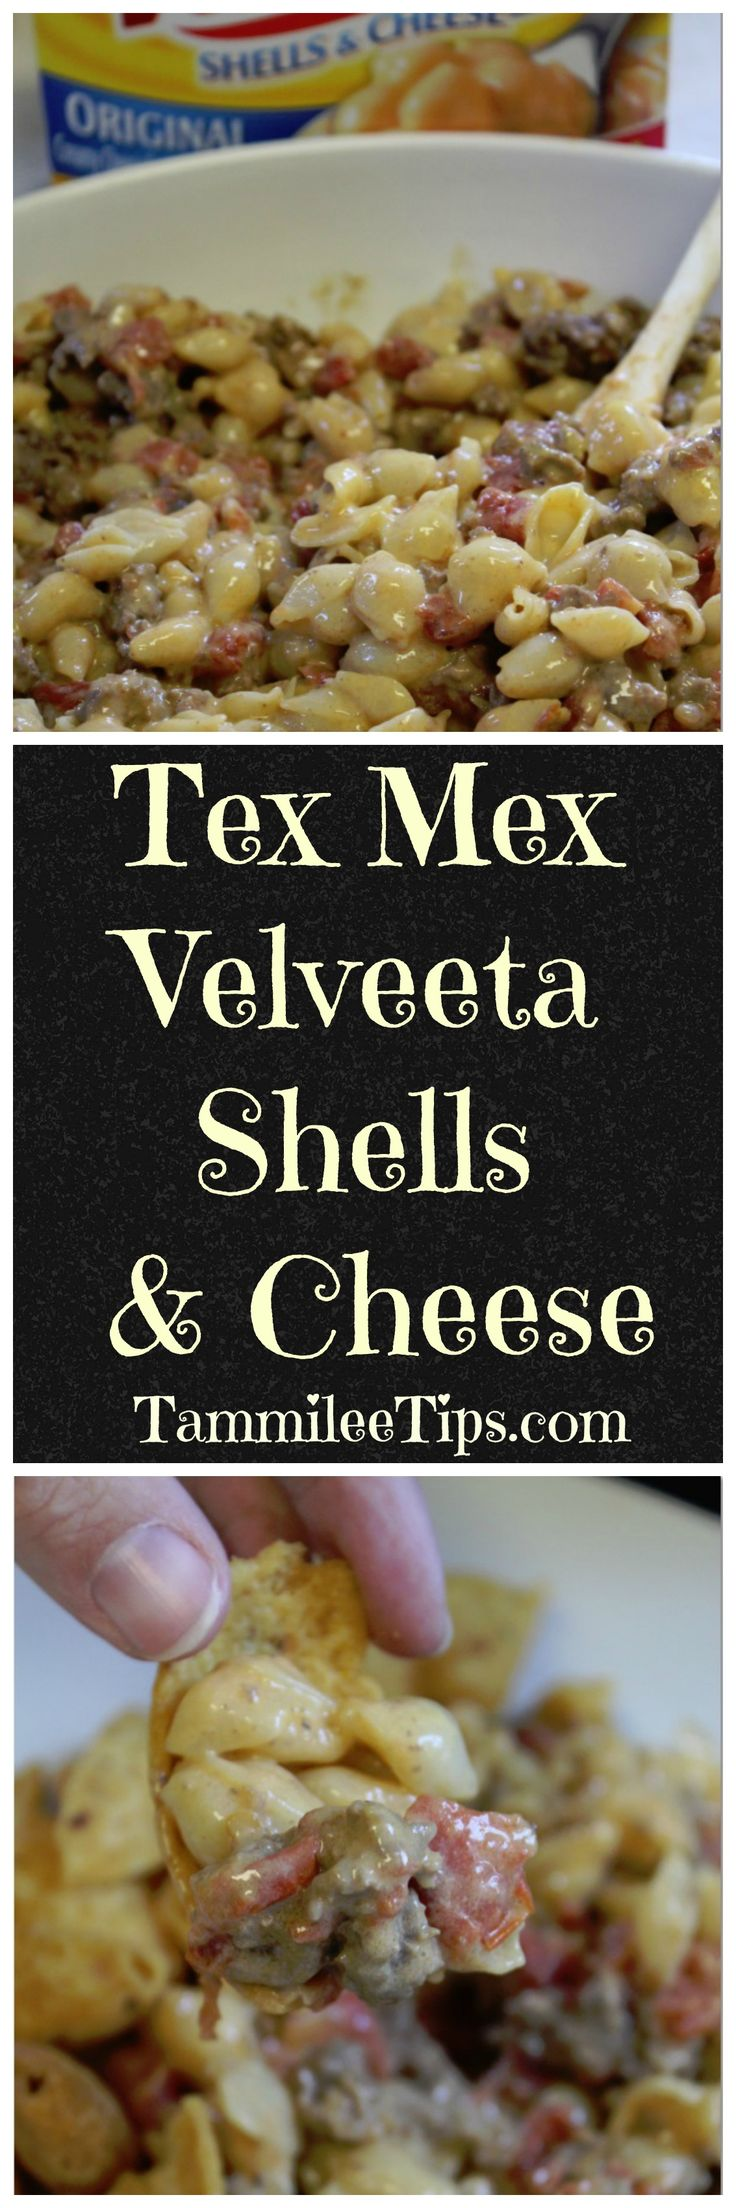 Tex Mex Velveeta Shells & Cheese Recipe! Take your Velveeta dinner up a notch with this fun recipe. Perfect for family dinners it is so easy to make!